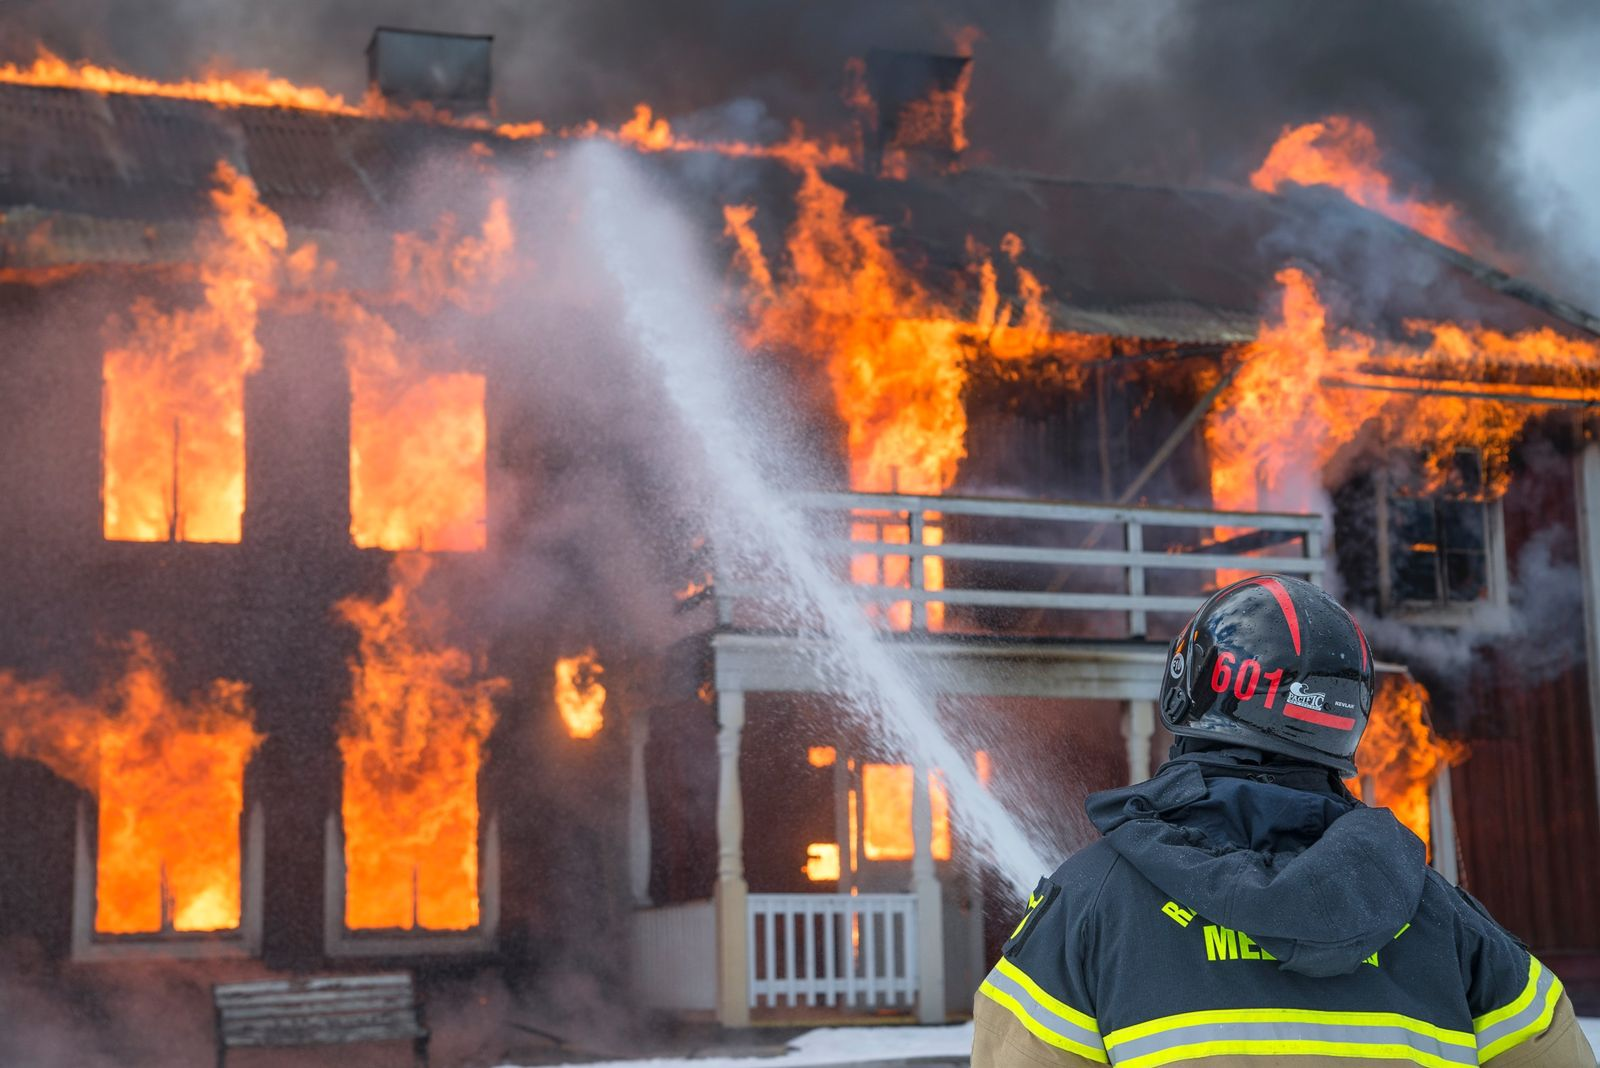 Home insurance claim attorney needed as Florida house fires rise in quarantine and during hurricanes